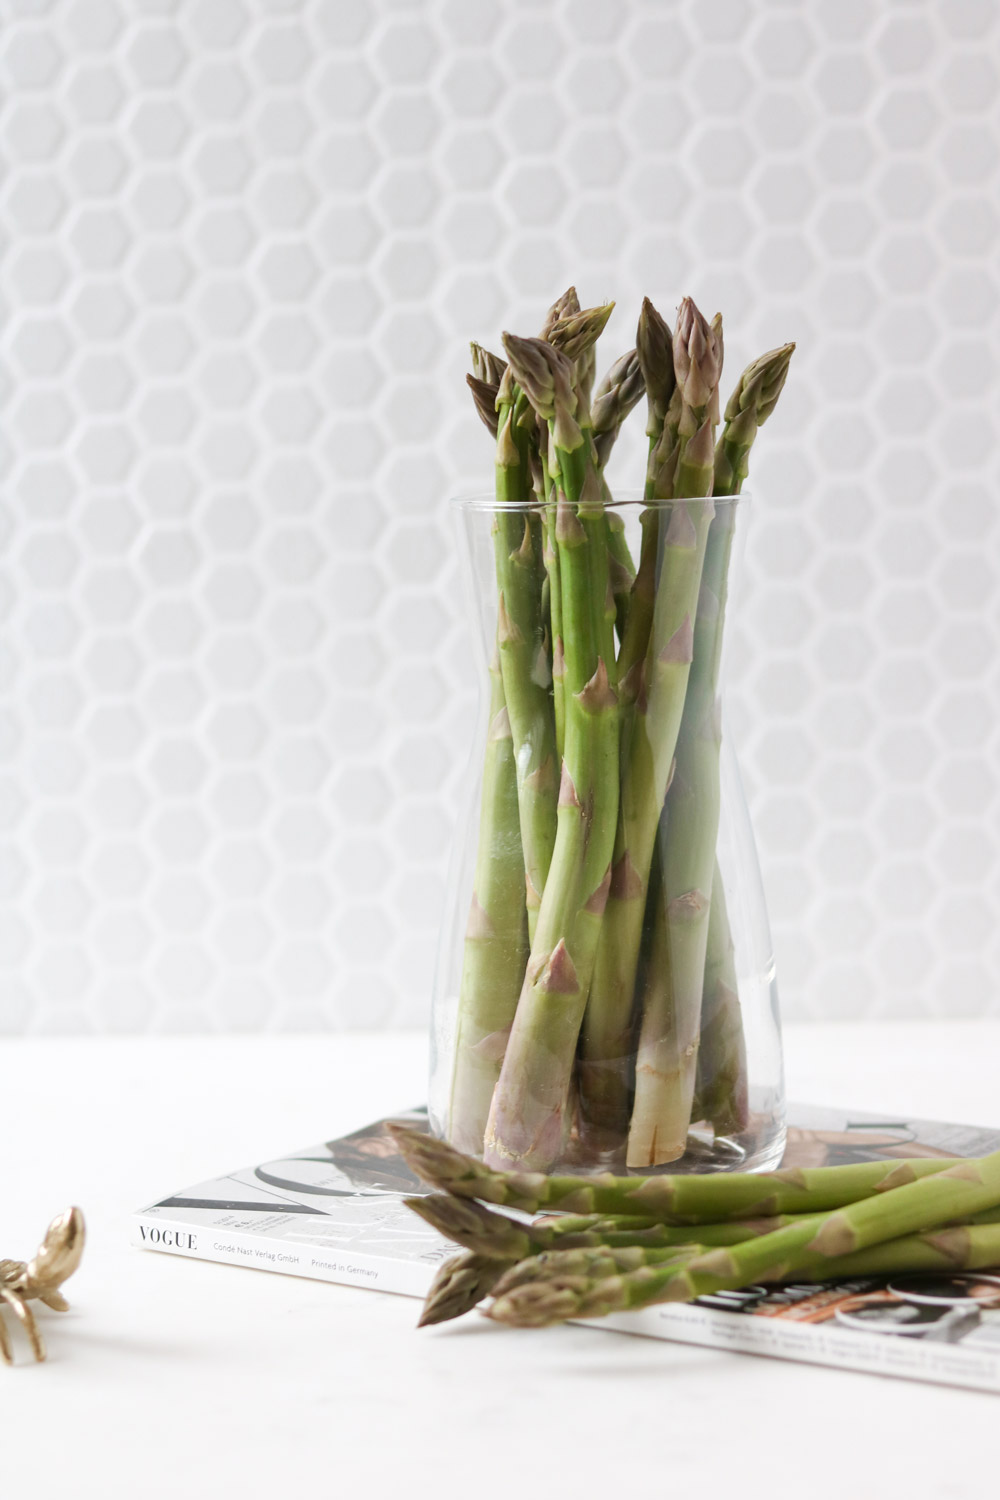 Asparagus - The Ultimate Spring Veggie